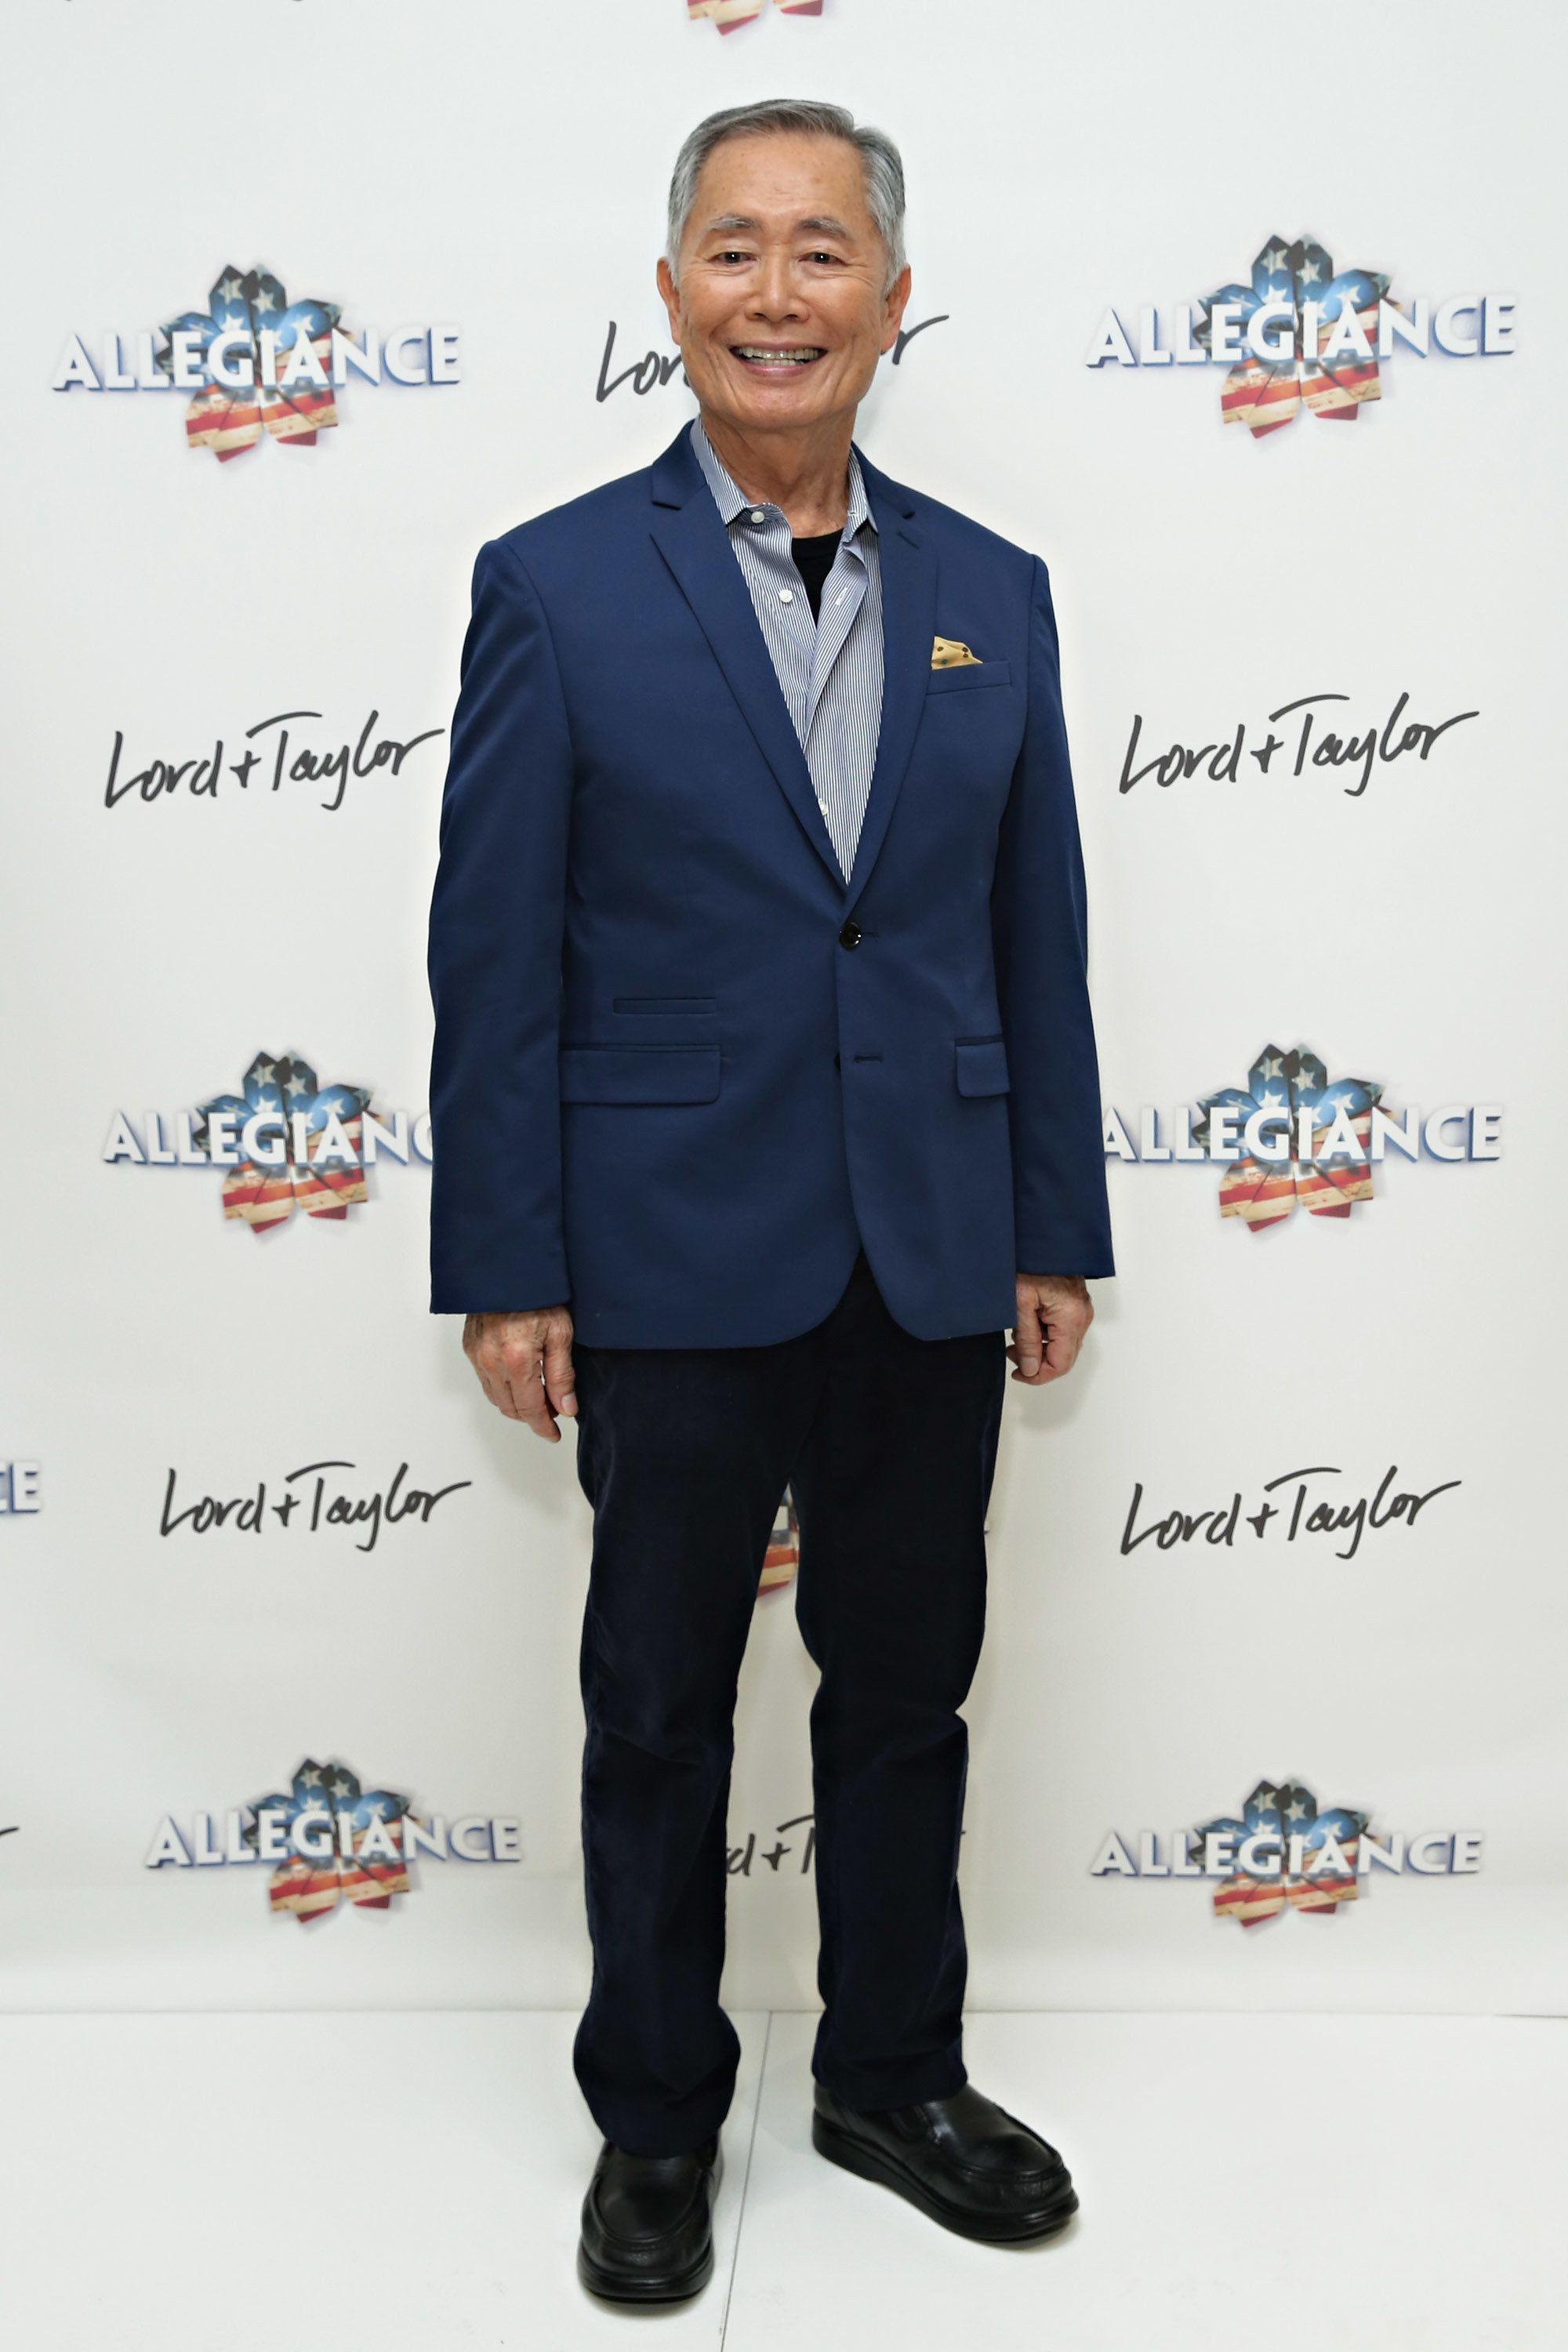 NEW YORK, NY - DECEMBER 14:  Actor George Takei attends the Allegiance cast meet and greet at Lord & Taylor on December 14, 2015 in New York City.  (Photo by Cindy Ord/Getty Images for Lord & Taylor)